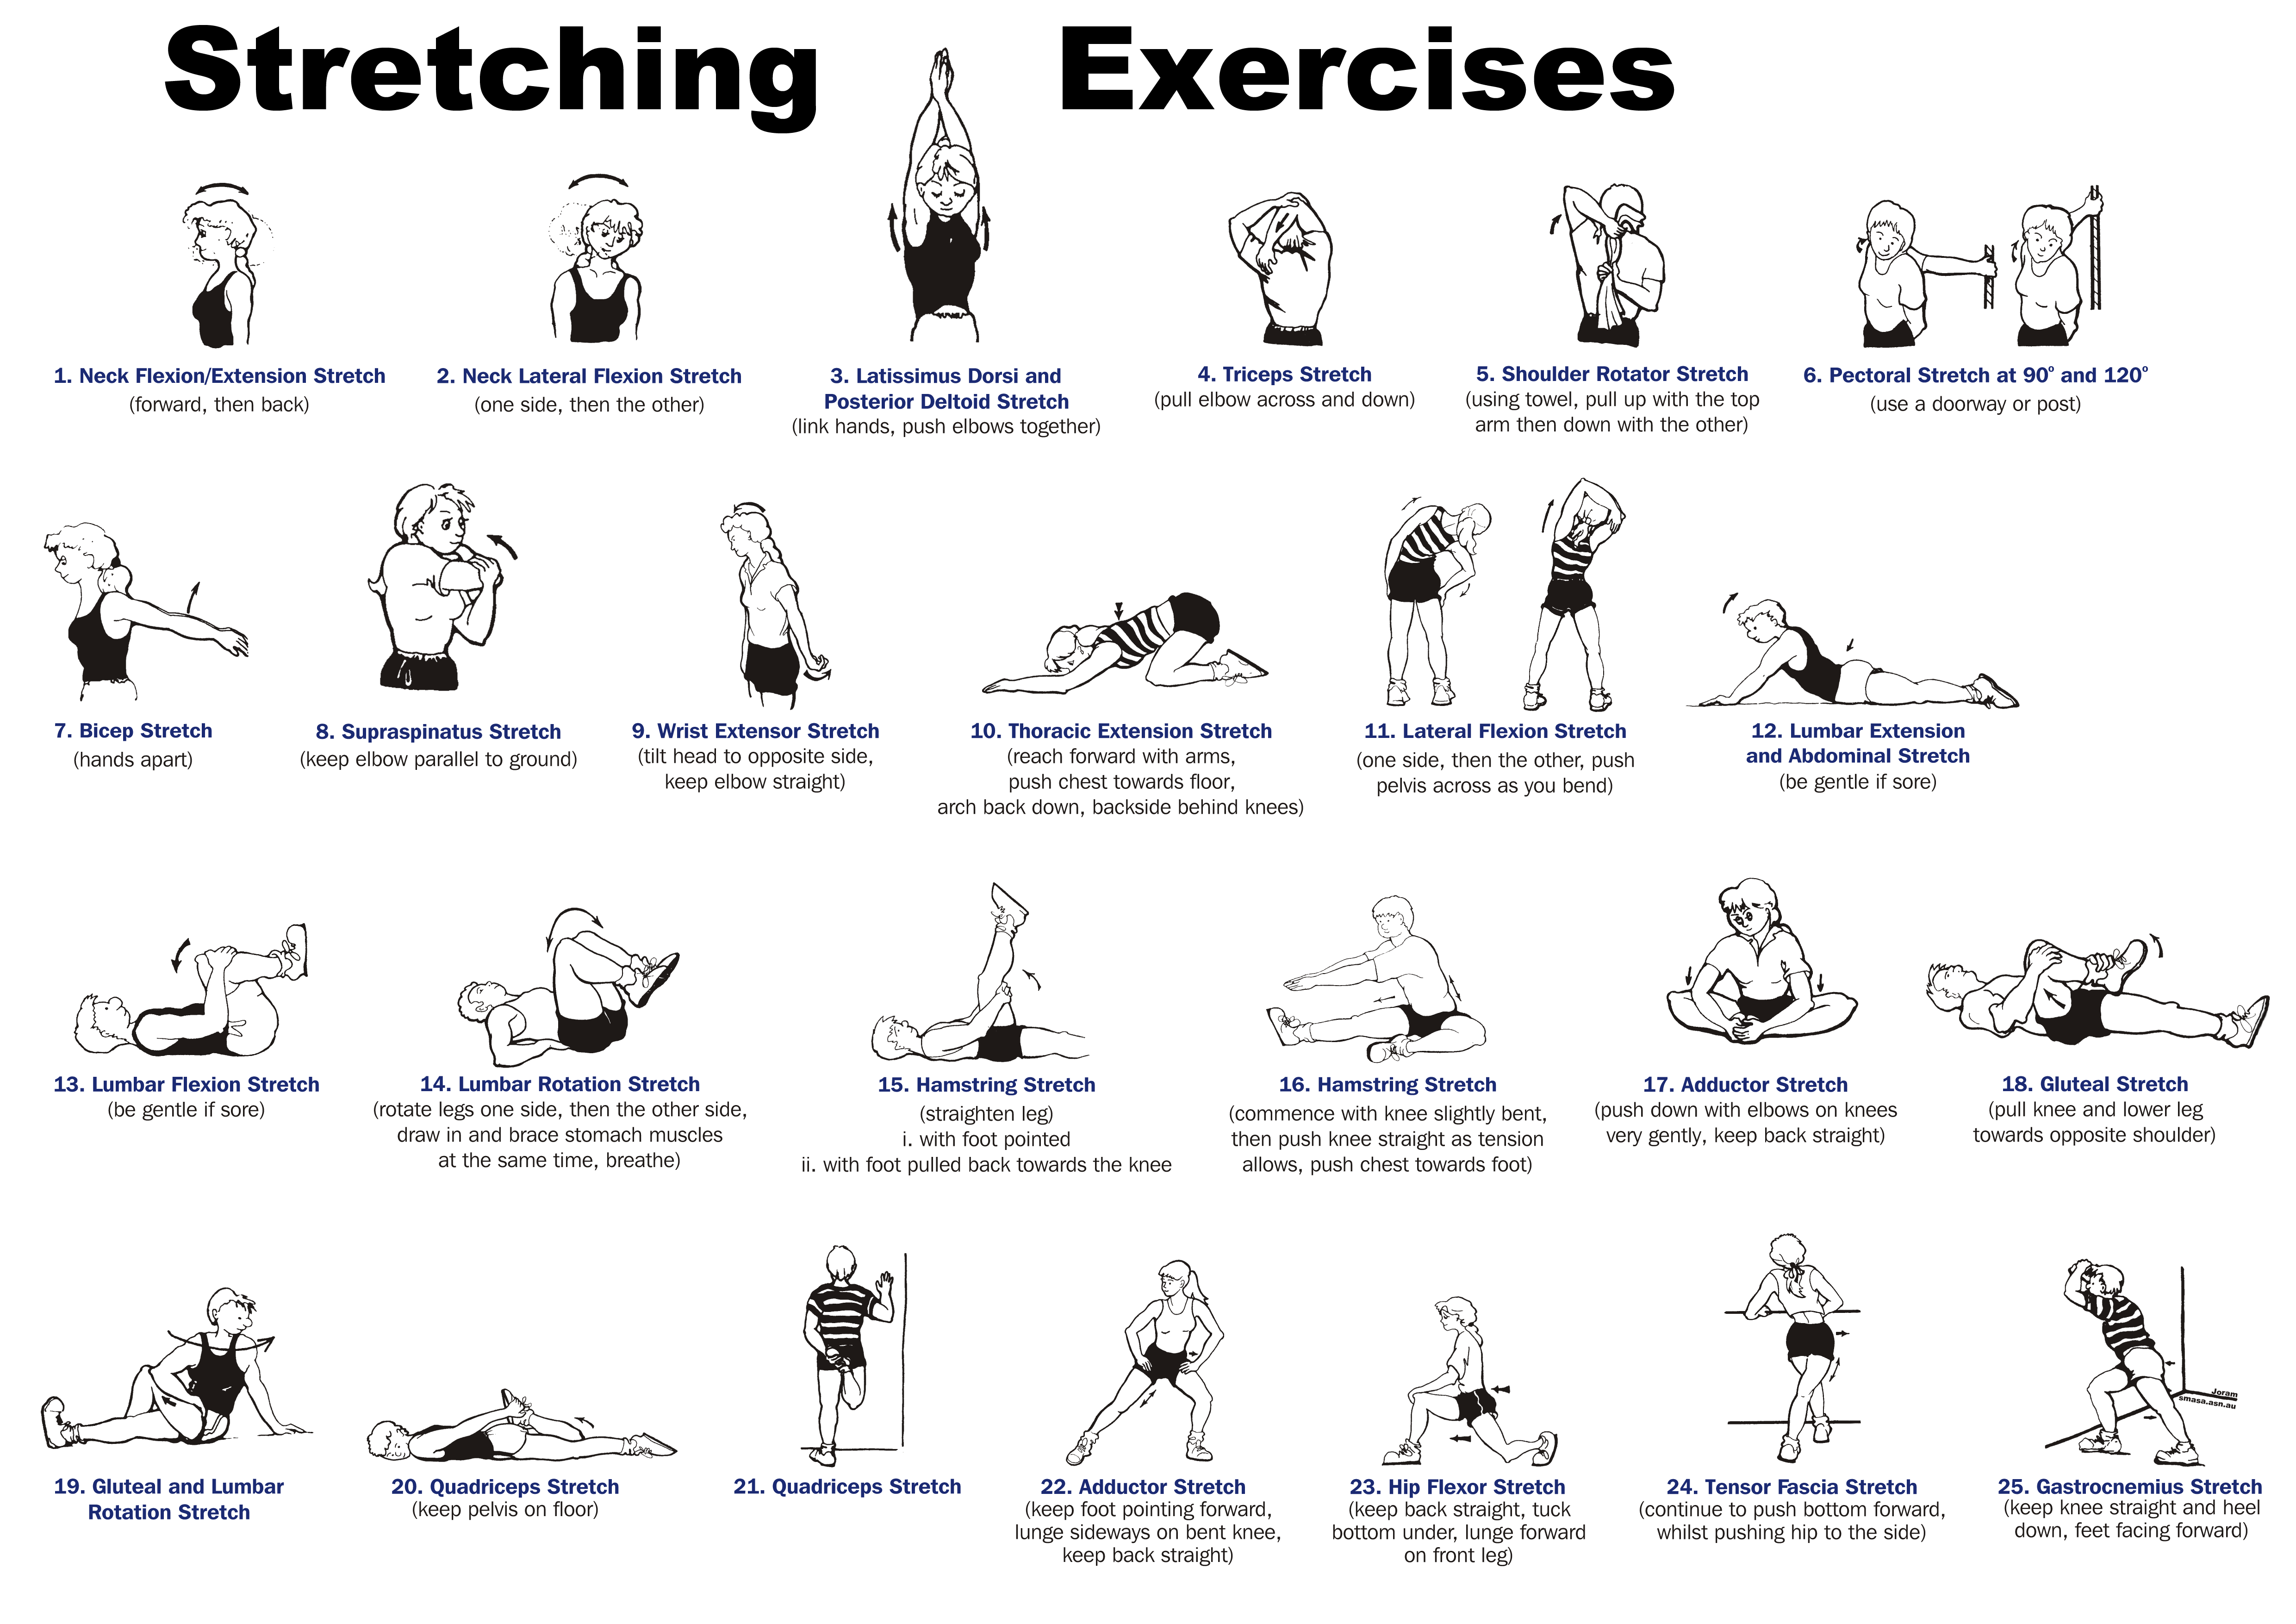 Stretching Exercises With Helpful Illustrations